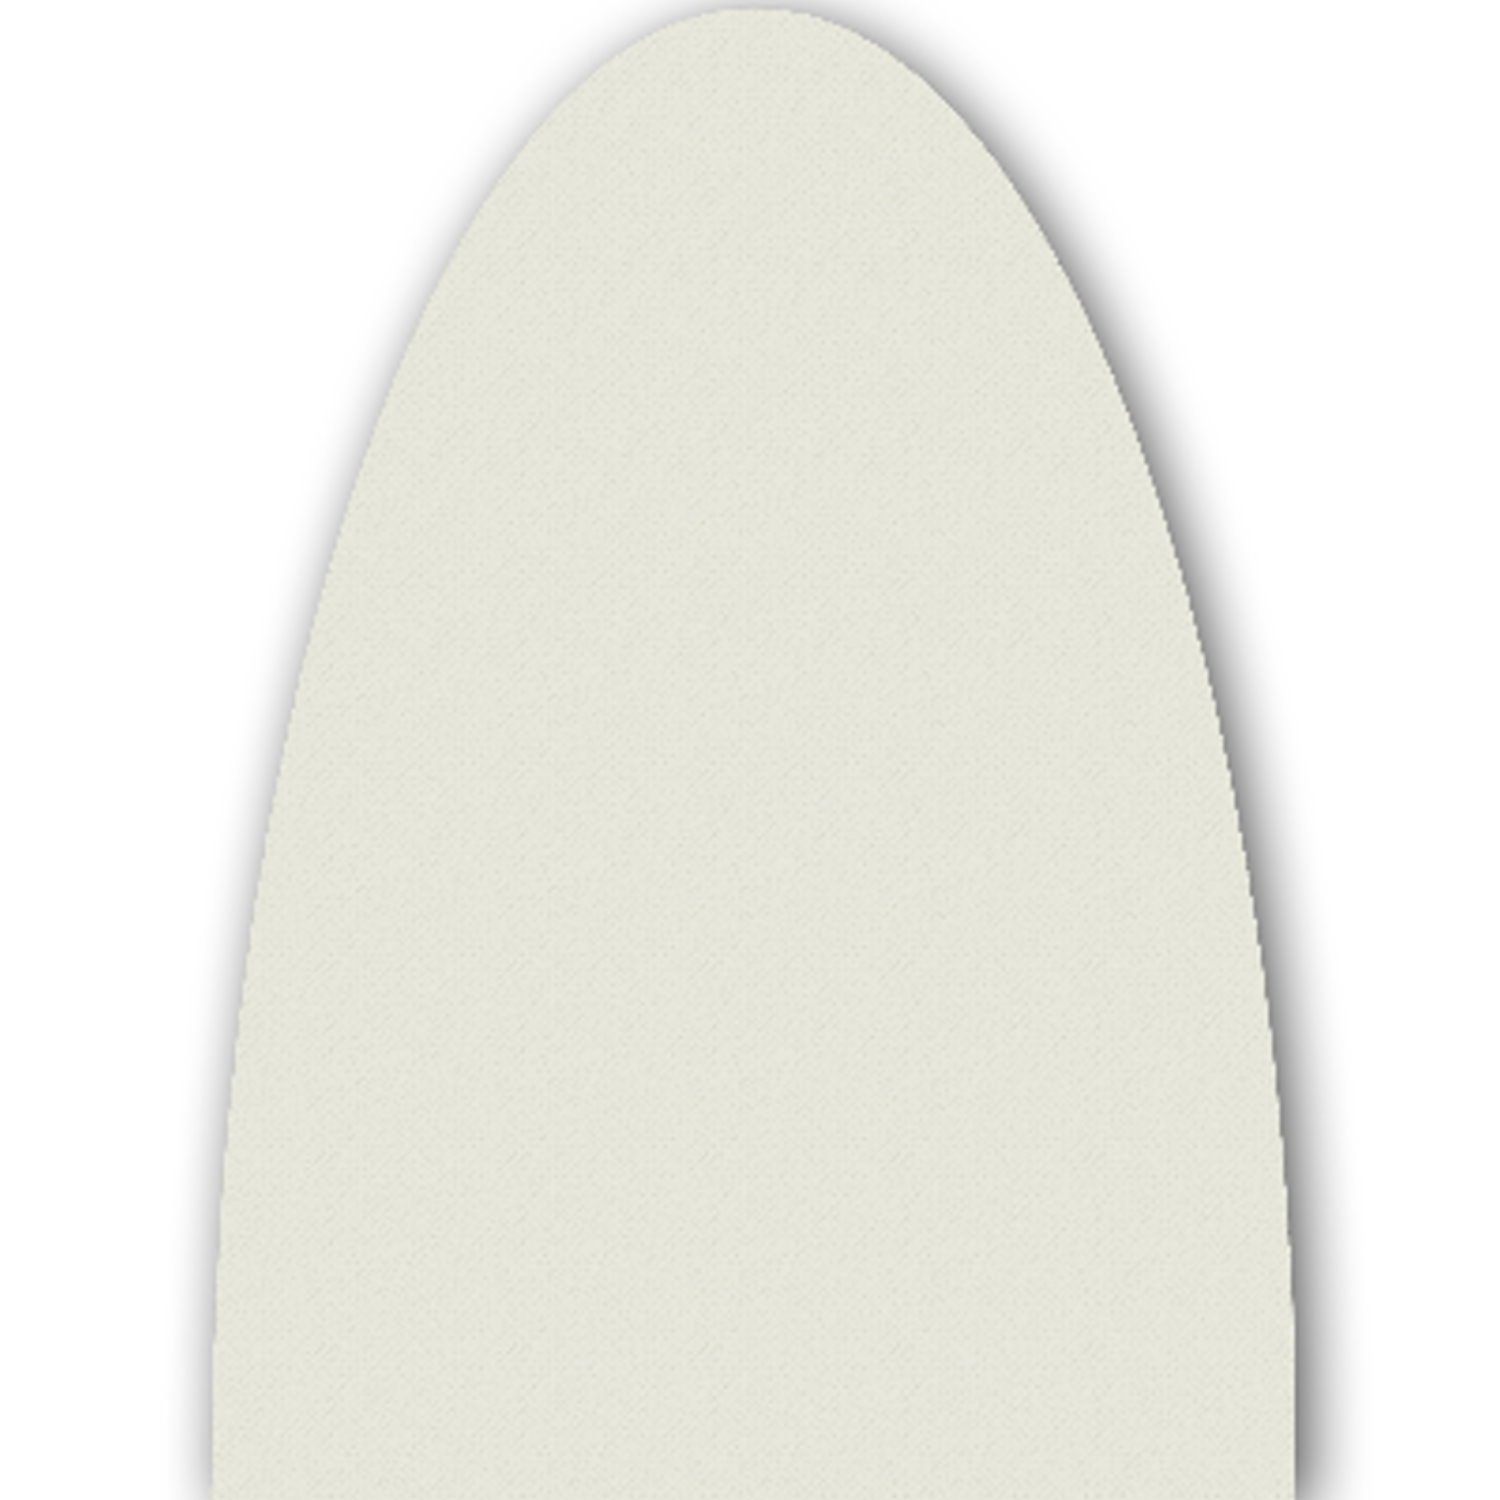 ClarUSA Premium Replacement Cover fits EuroPro Ironing Boards (EP51A Model, Natural Twill)